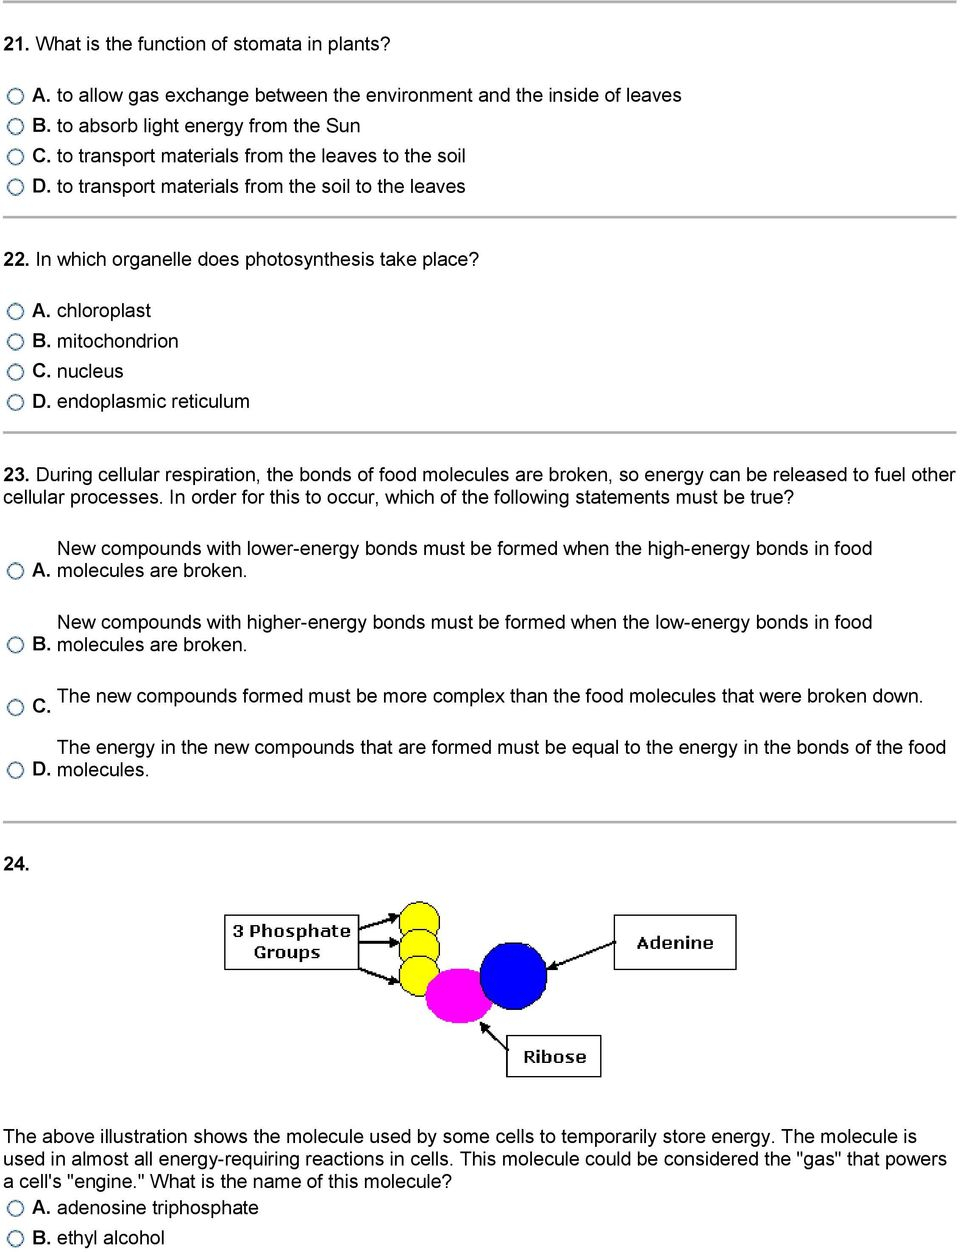 Venn Diagram Of Photosynthesis And Cellular Respiration Photosynthesis And Cellular Respiration Worksheet Luxury